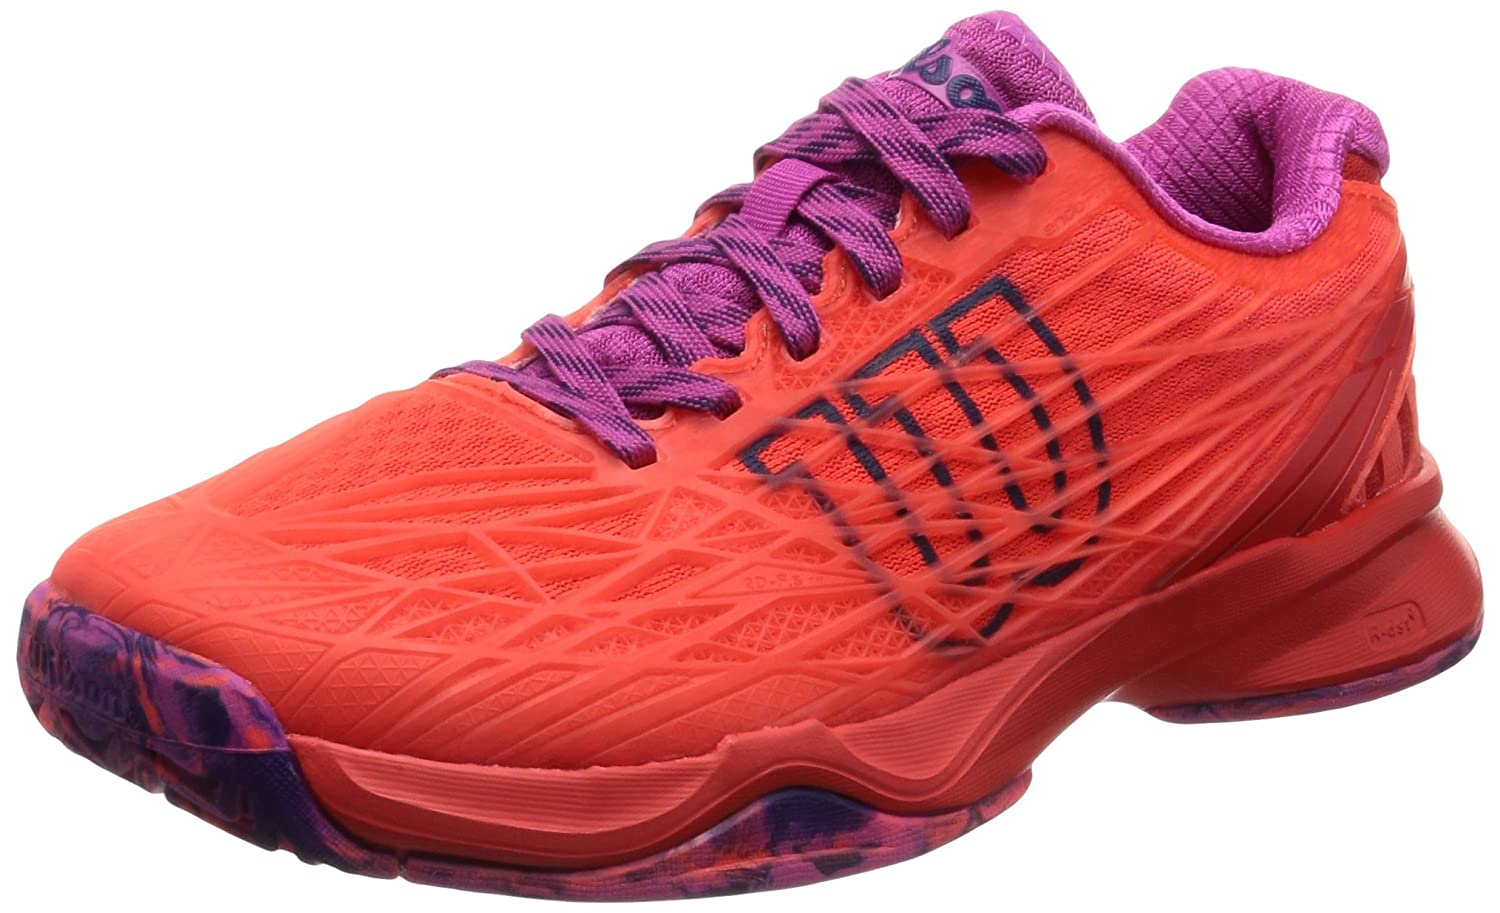 Wilson Kaos Womens Tennis Shoe B01K5IR662 10 B(M) US|Fiery Coal/Fiery Red/Rose